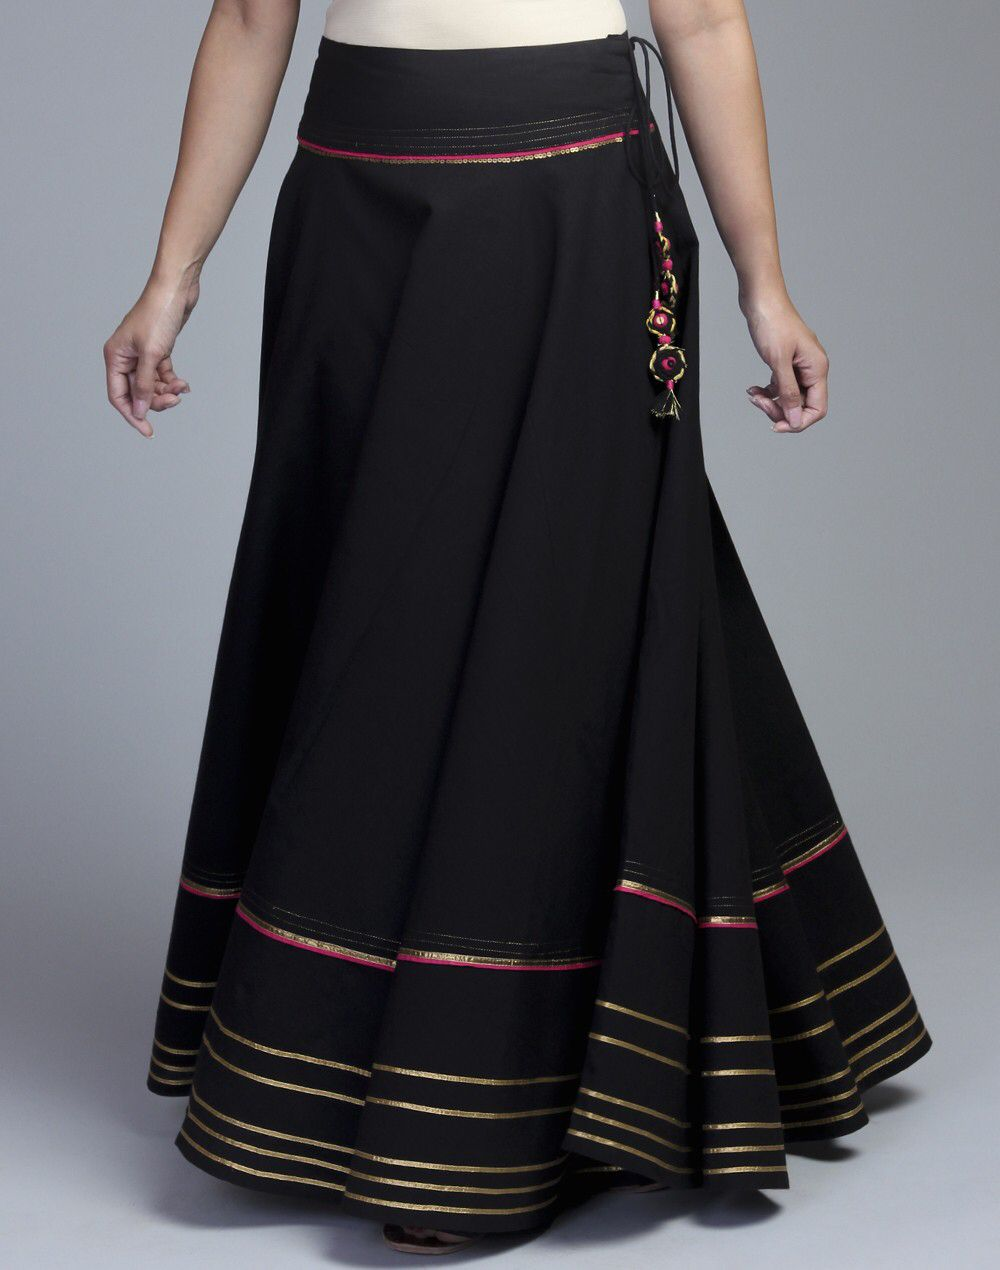 6455ef8ca7 Indian Long Dress, Indian Wear, Indian Attire, Long Skirts Online, Skirt  Online